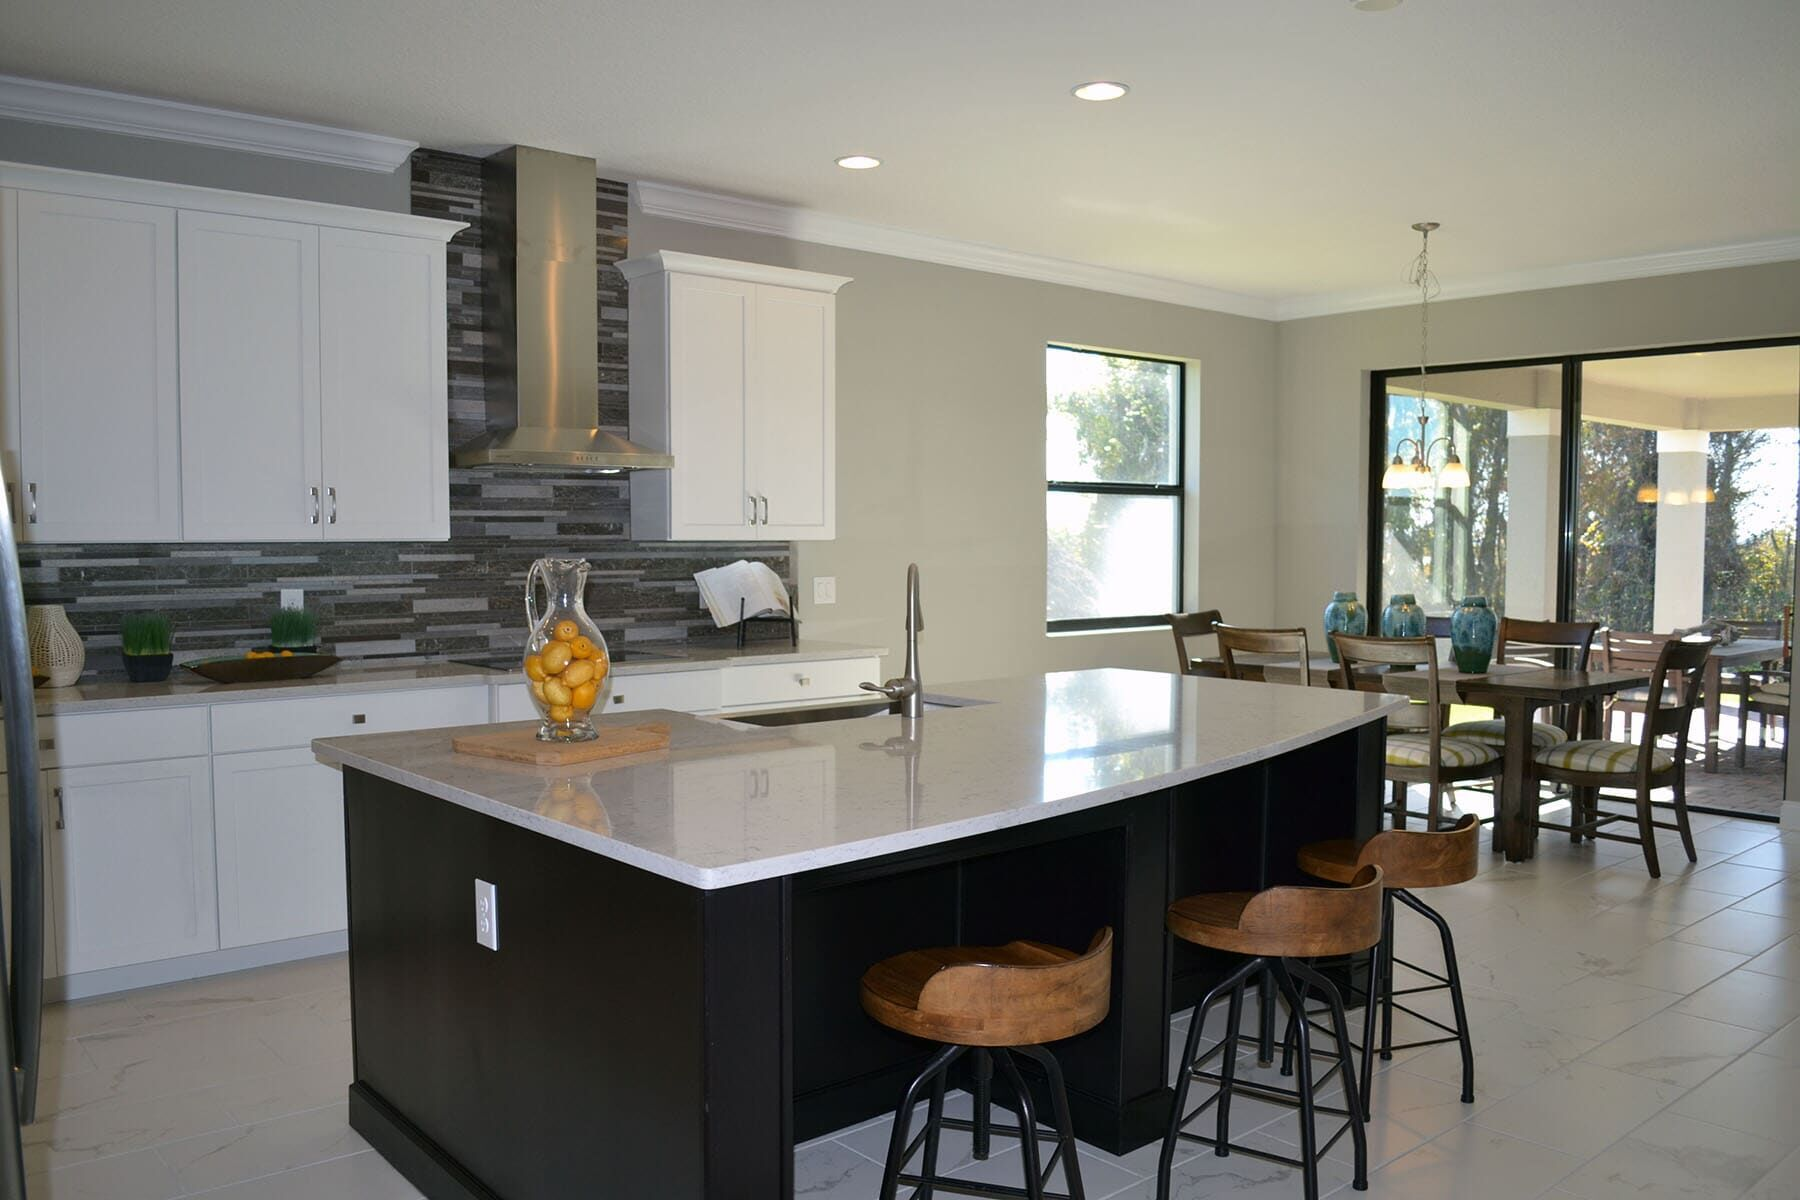 Kitchen featured in the Glenwood By M/I Homes in Orlando, FL